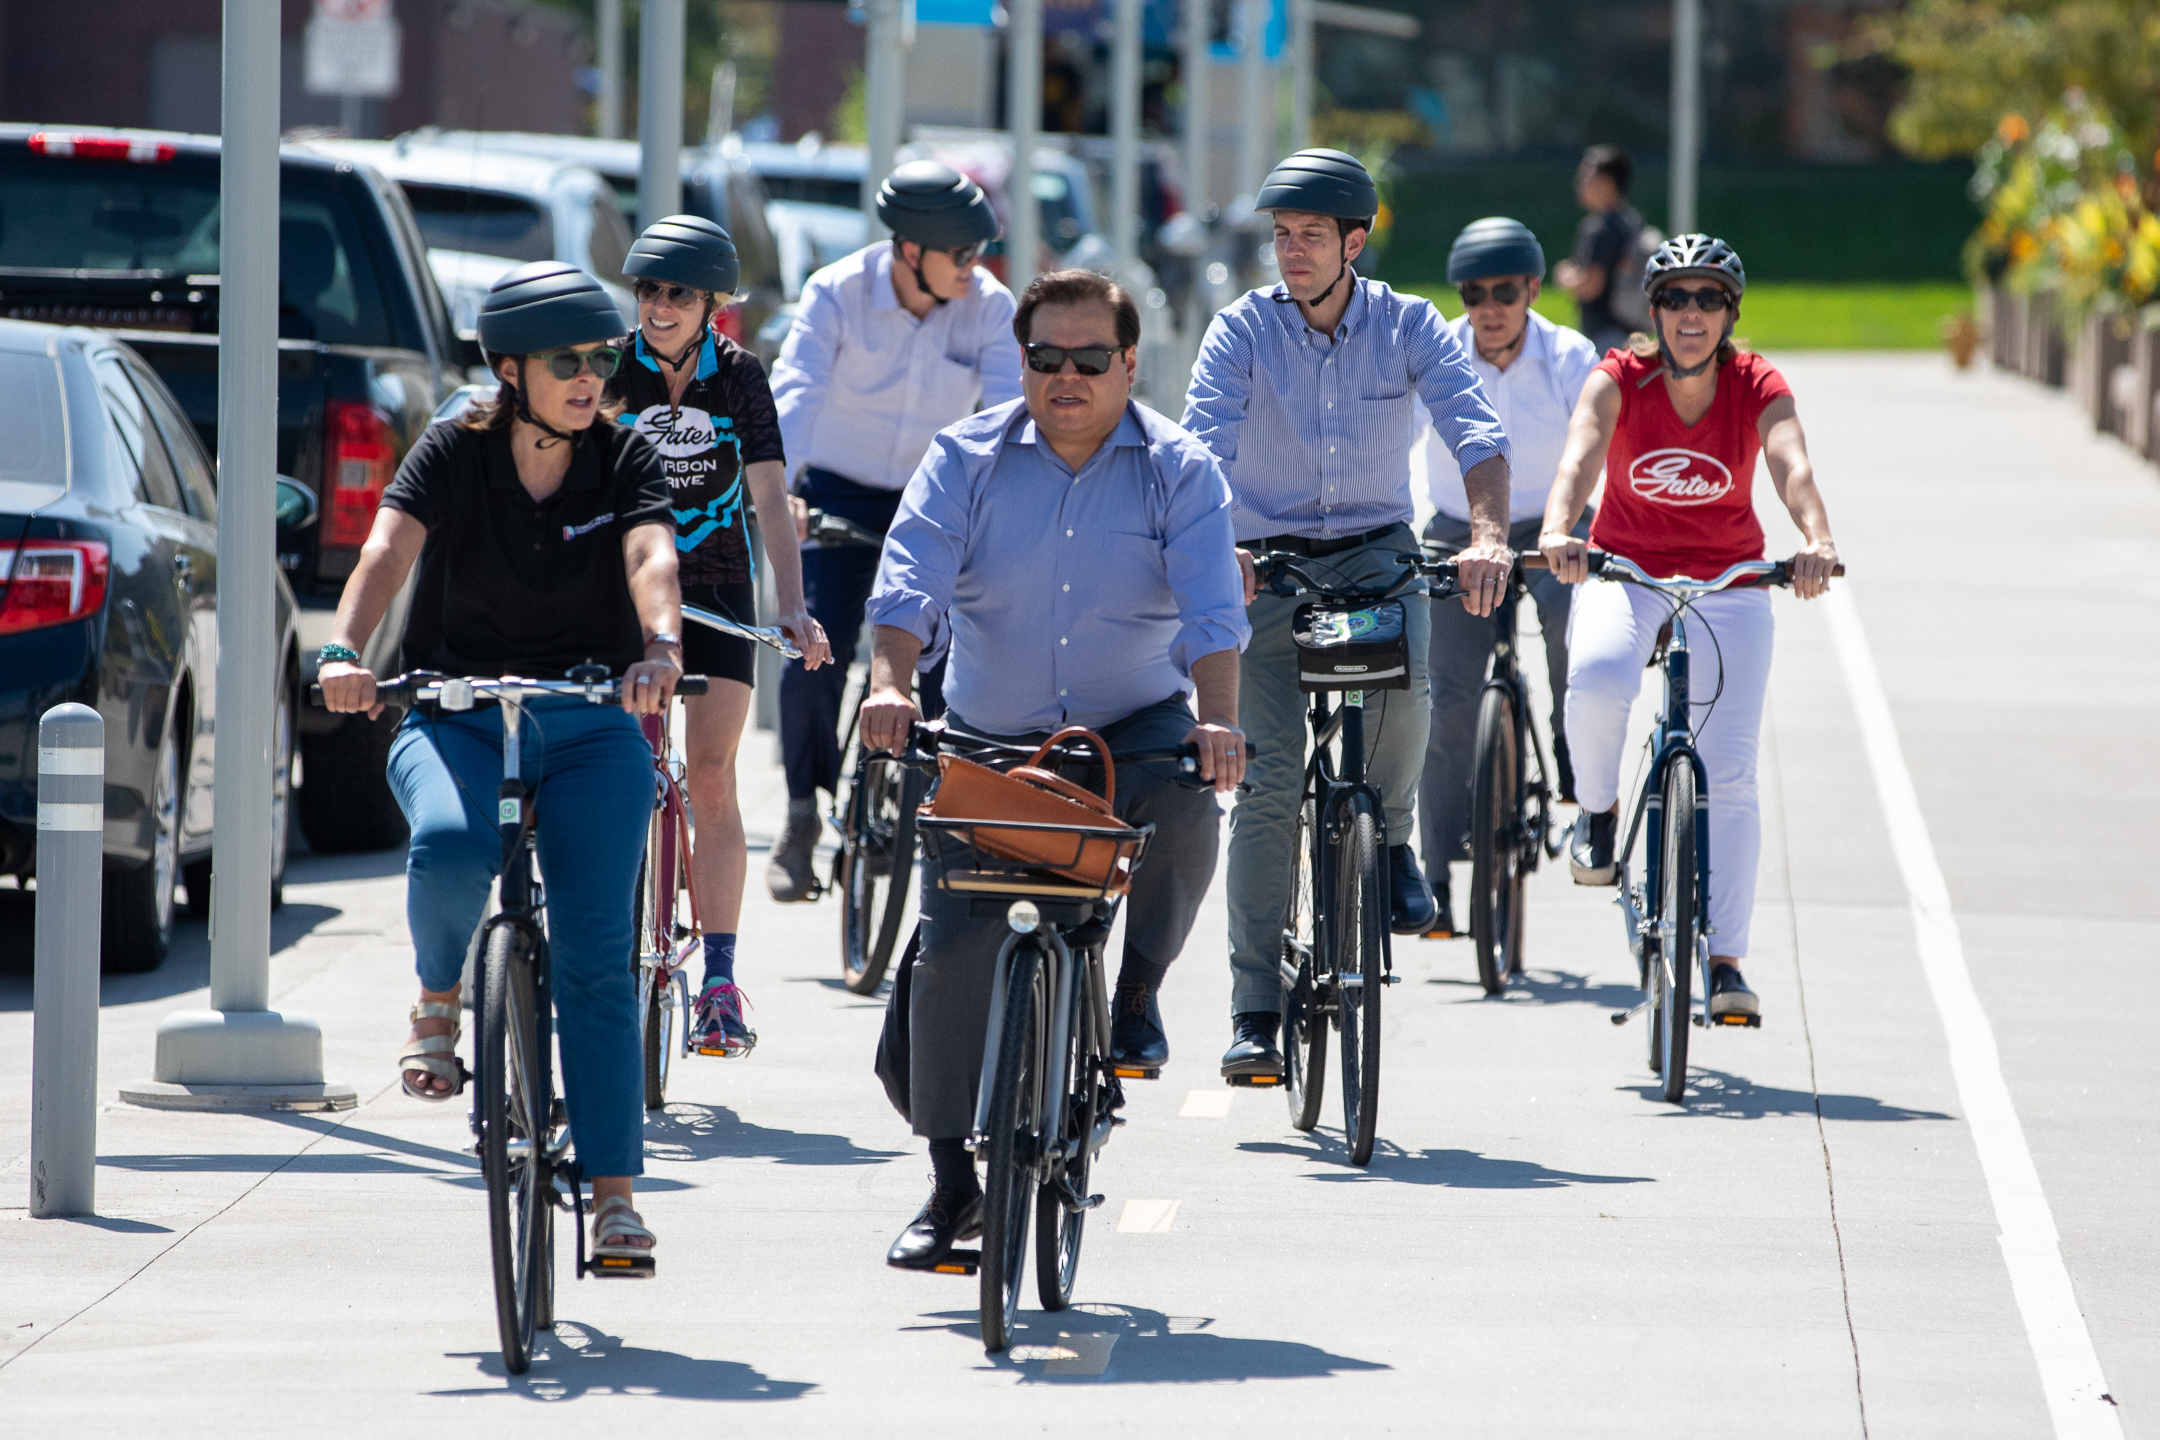 A group of officials ride along the 5.28 mile route that the 5280 Traill will follow following the press conference yesterday. Photo: Andy Bosselman